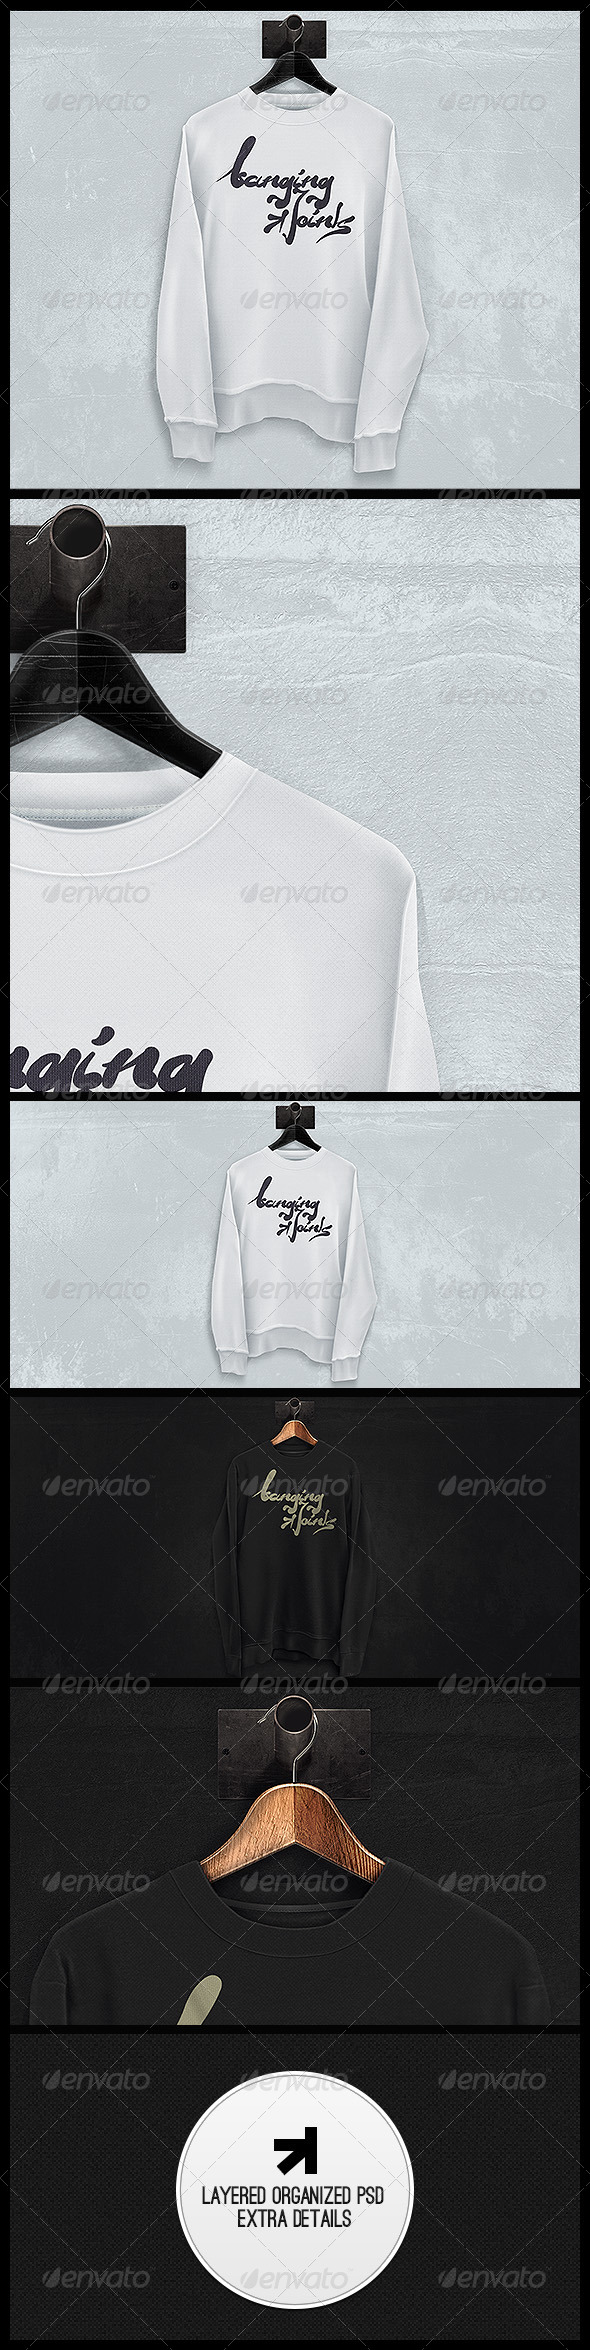 Black White Sweatshirt Mockup - T-shirts Apparel